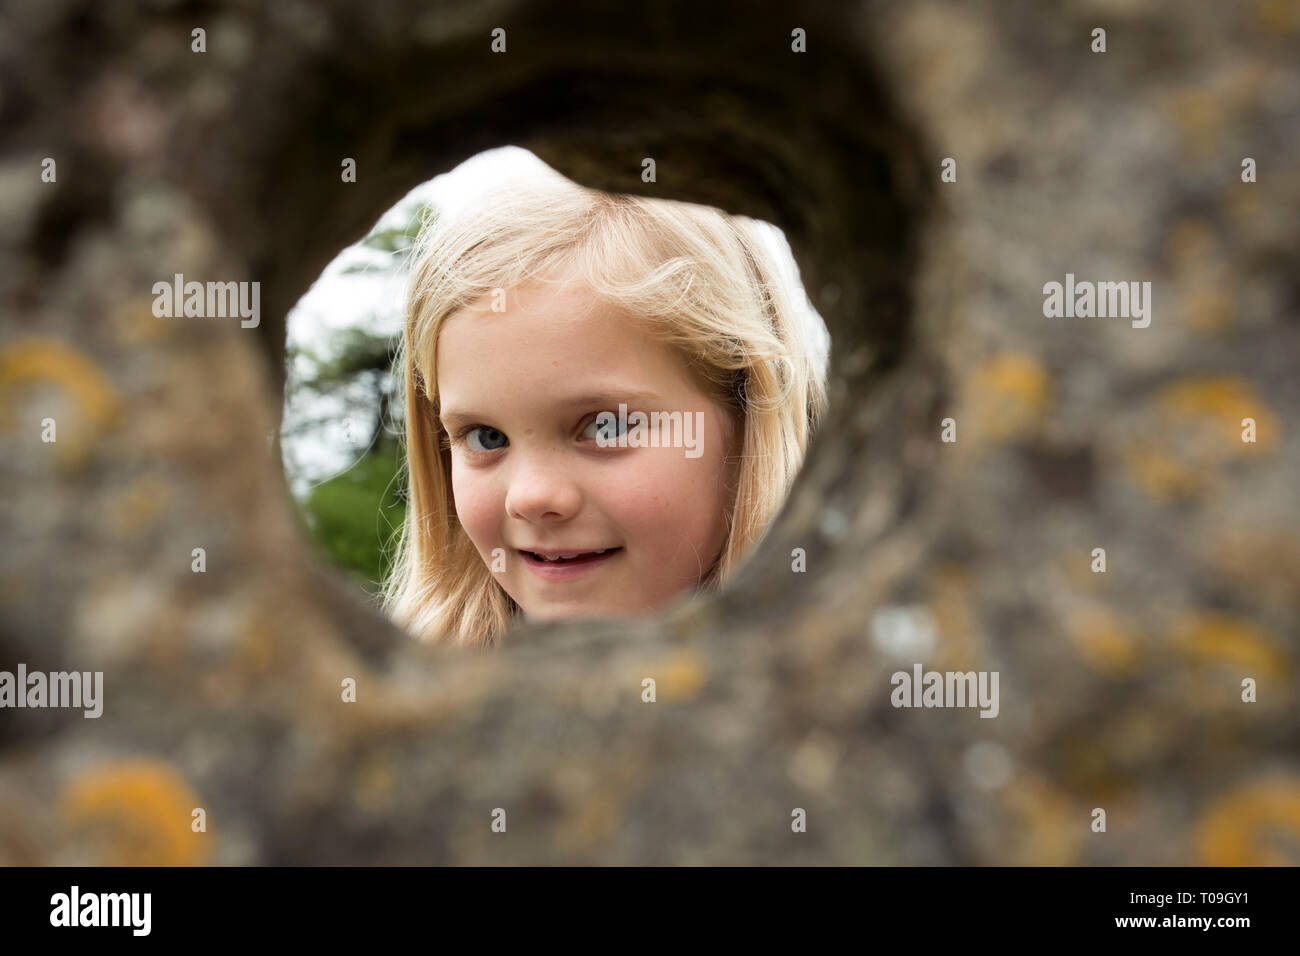 Great Britain, England, Oxfordshire, Rollright Stones.  Young girl looks through a natural hole in a megalith, possibly a pagan ritual dating back cen - Stock Image